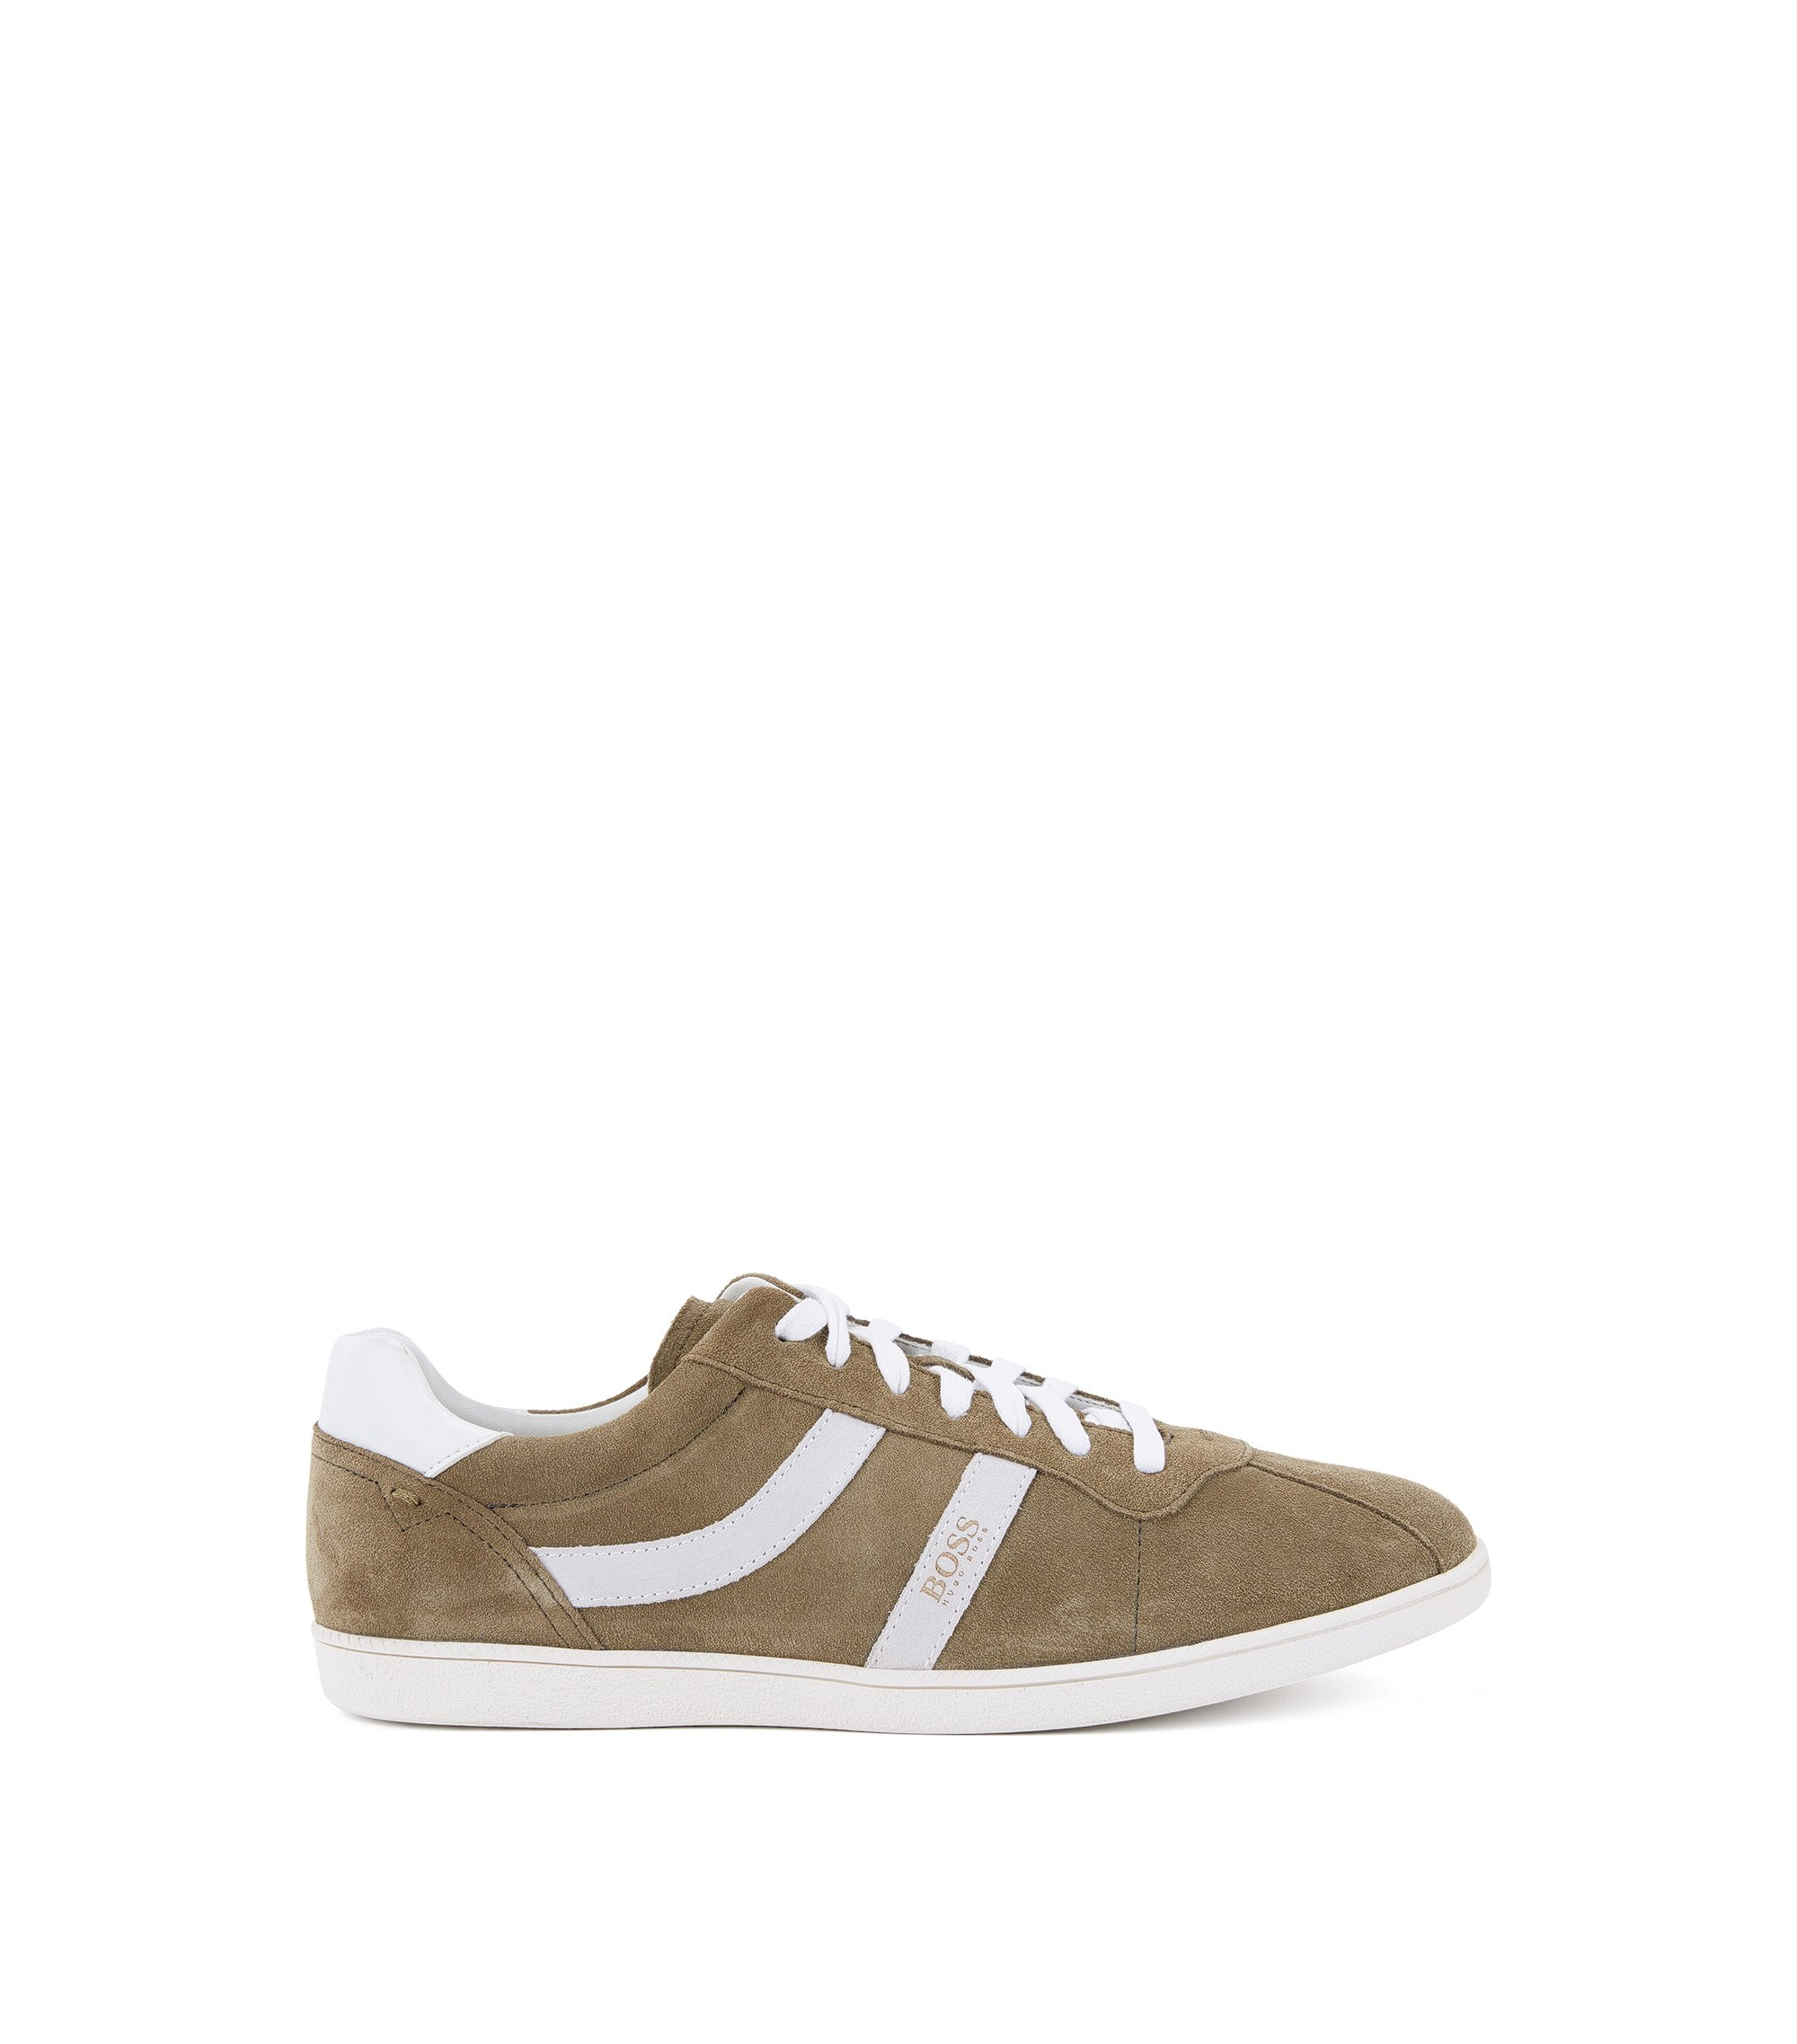 Sneakers low-top in pelle scamosciata con righe laterali, Verde